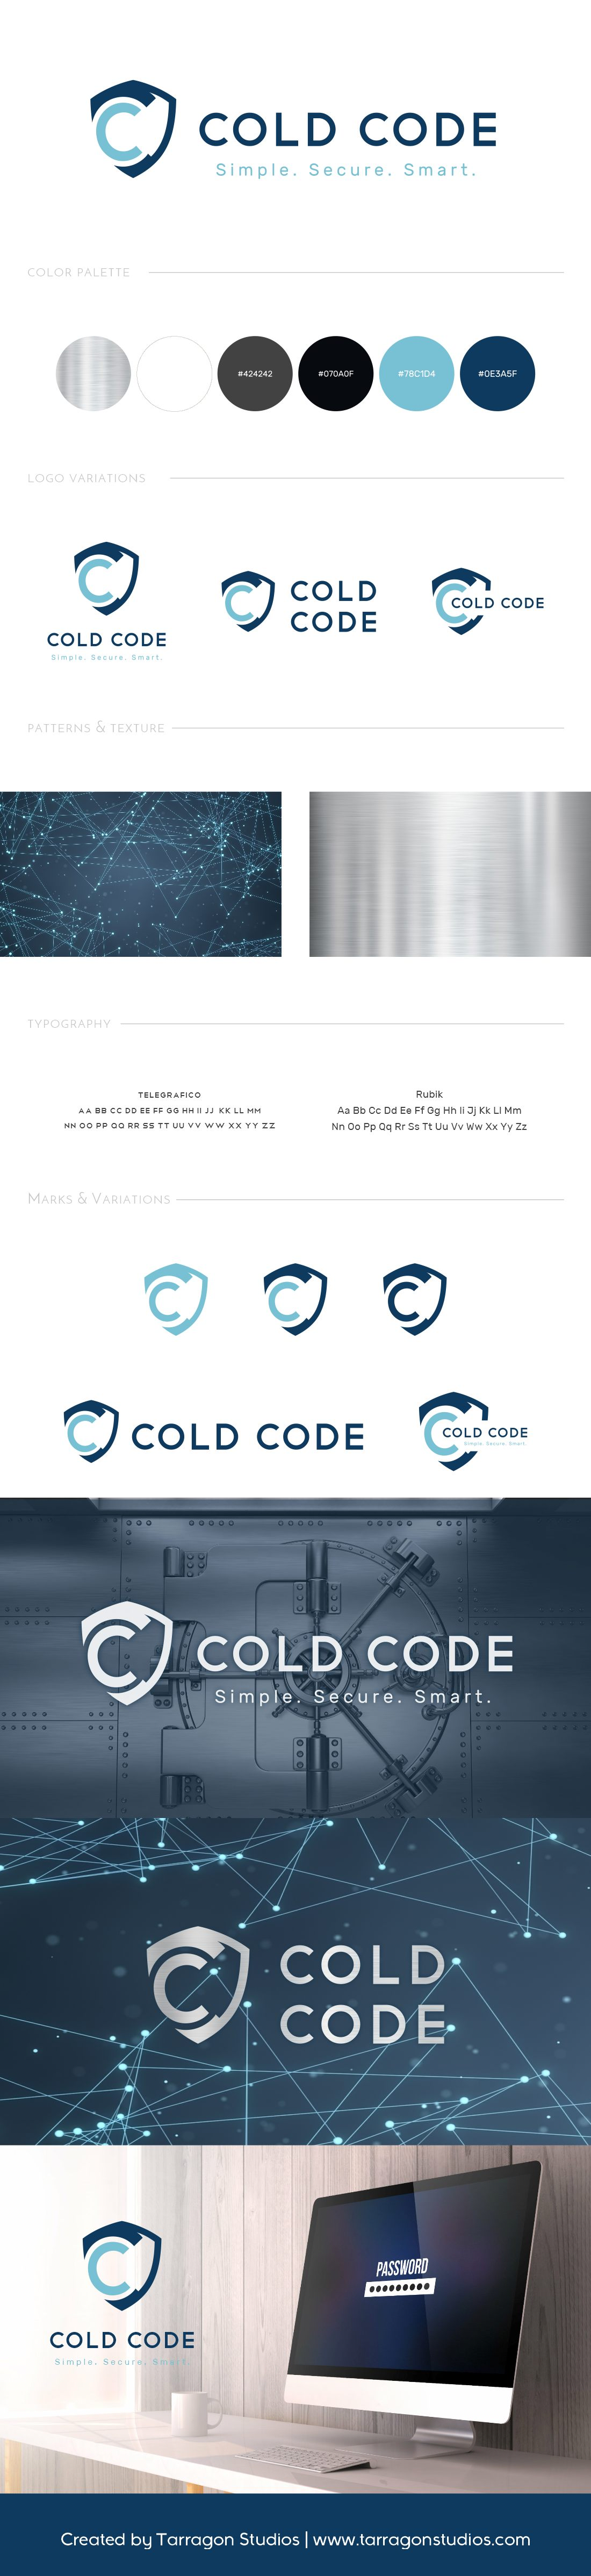 Techy masculine shield logo and brand for Cold Code Secure Crypto Currency Storage Device design by Tarragon Studios. Keep Reading to see all the strong security inspired logo variations! #logo #design #masculine #security